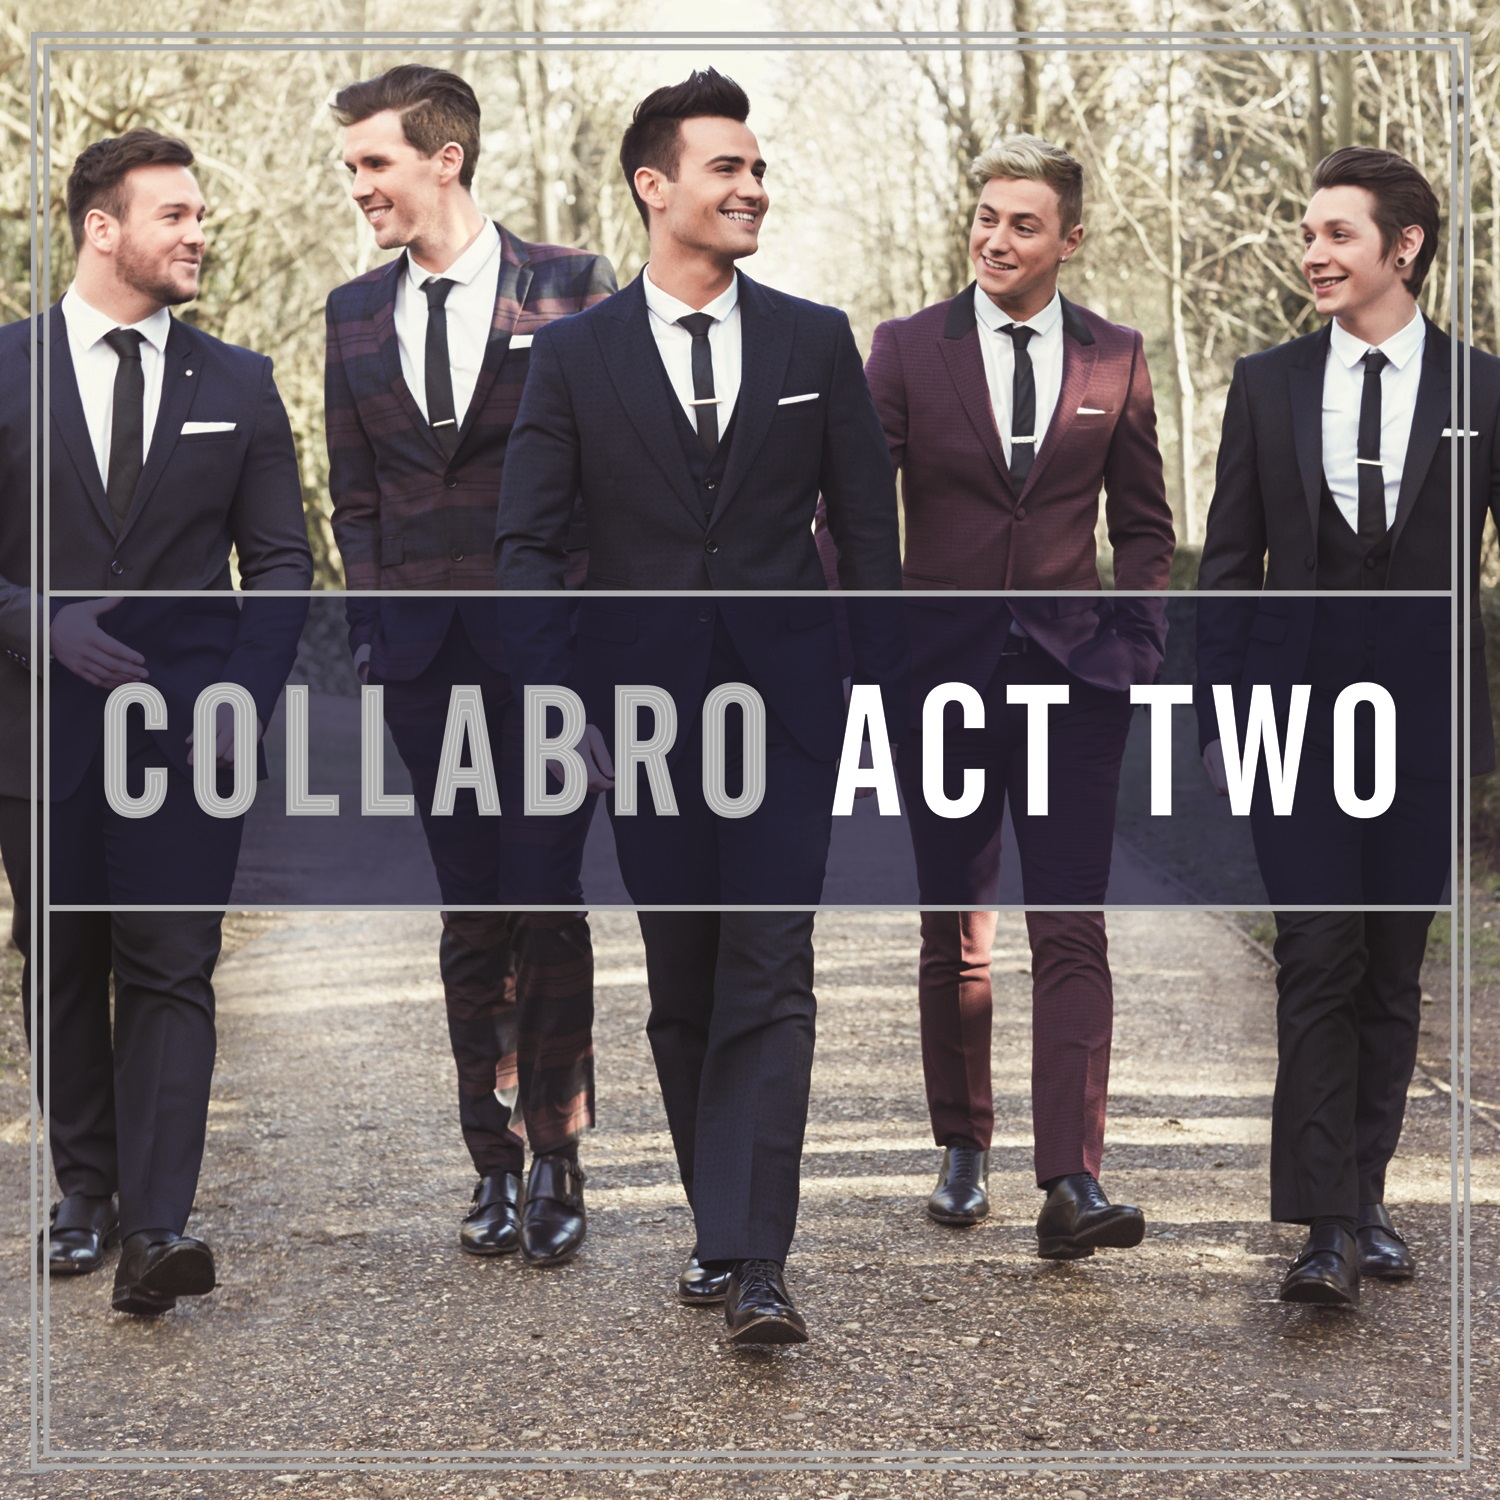 Win a Singed copy of Collabro's new album, Act Two!